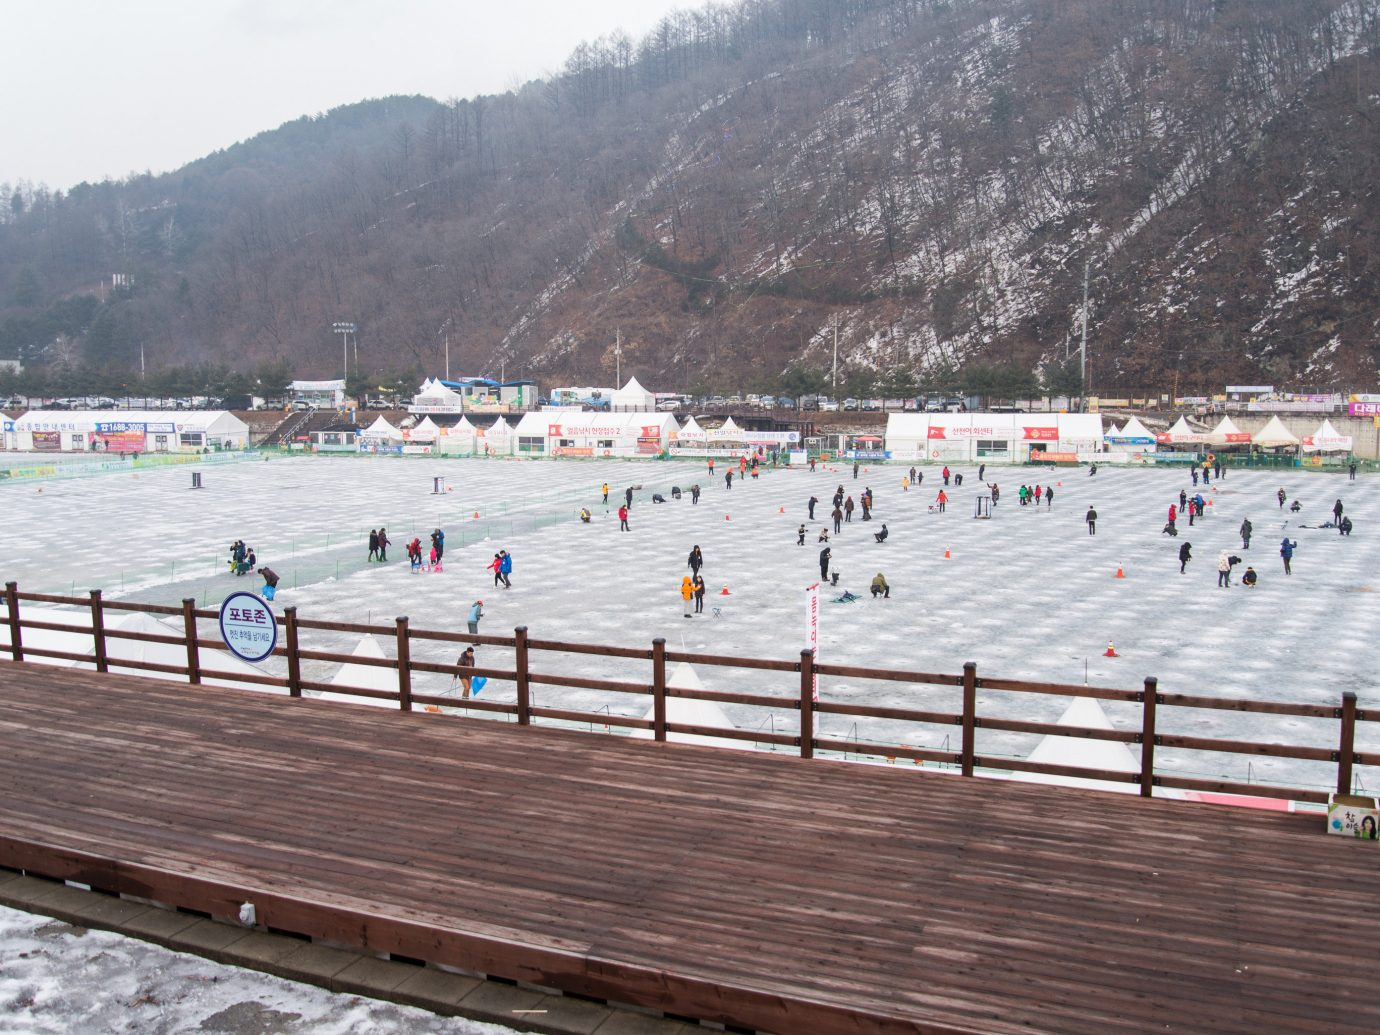 City Seoul Trip Ideas sport venue structure race race track Winter snow sky roof recreation tree sports leisure